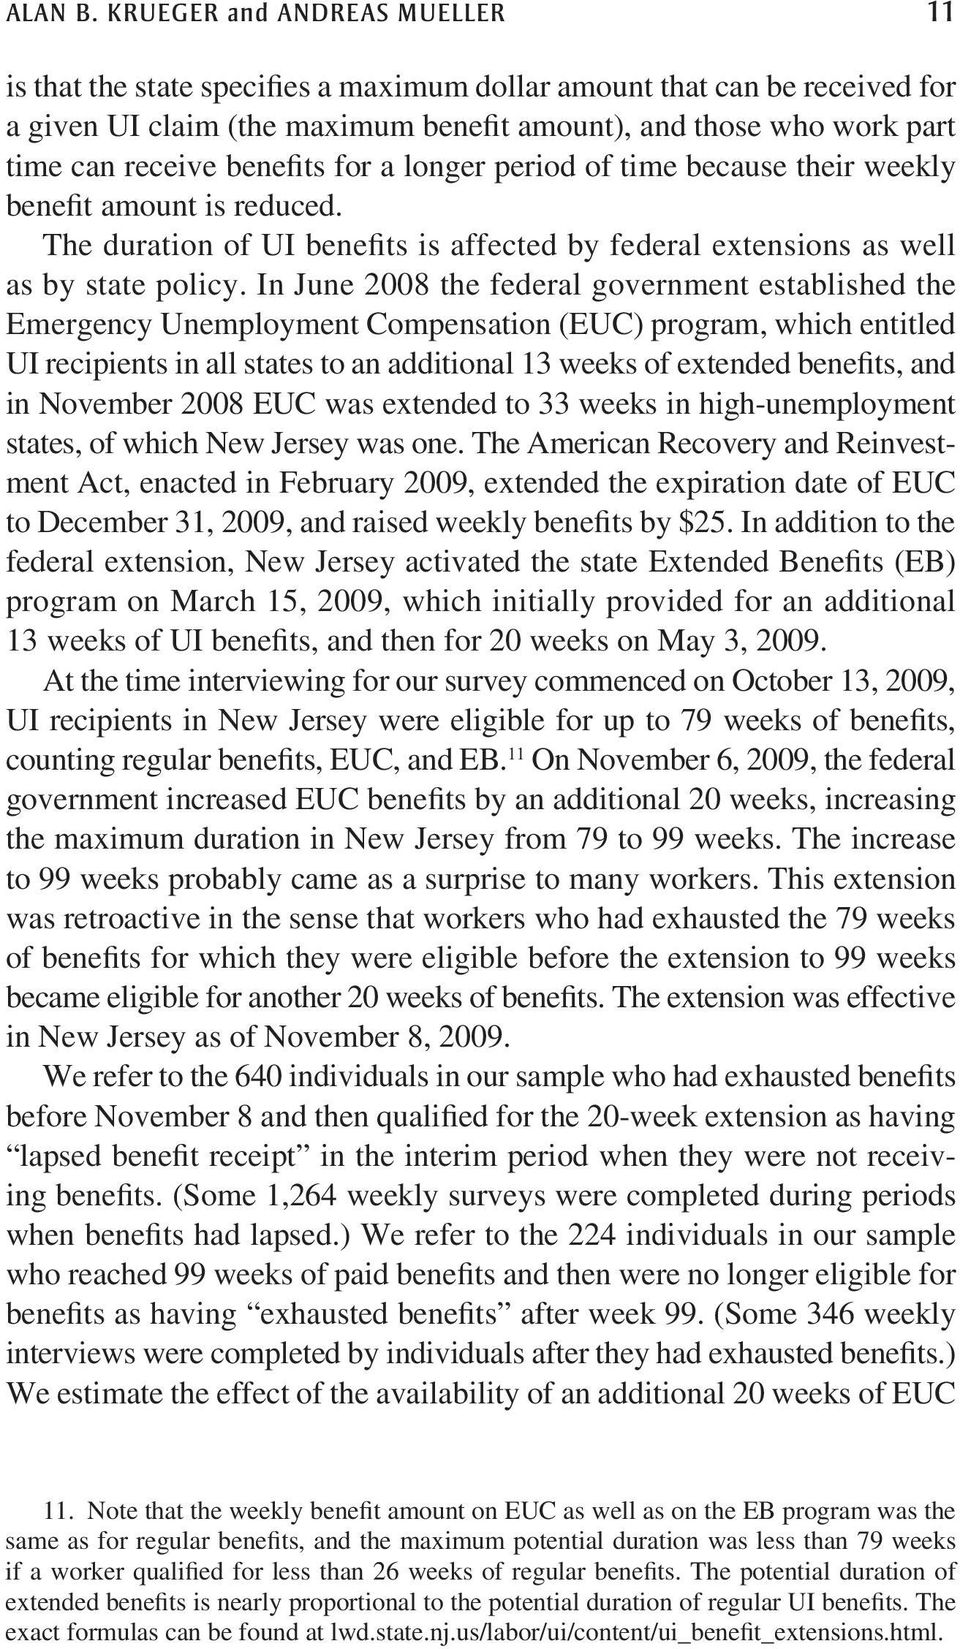 benefits for a longer period of time because their weekly benefit amount is reduced. The duration of UI benefits is affected by federal extensions as well as by state policy.